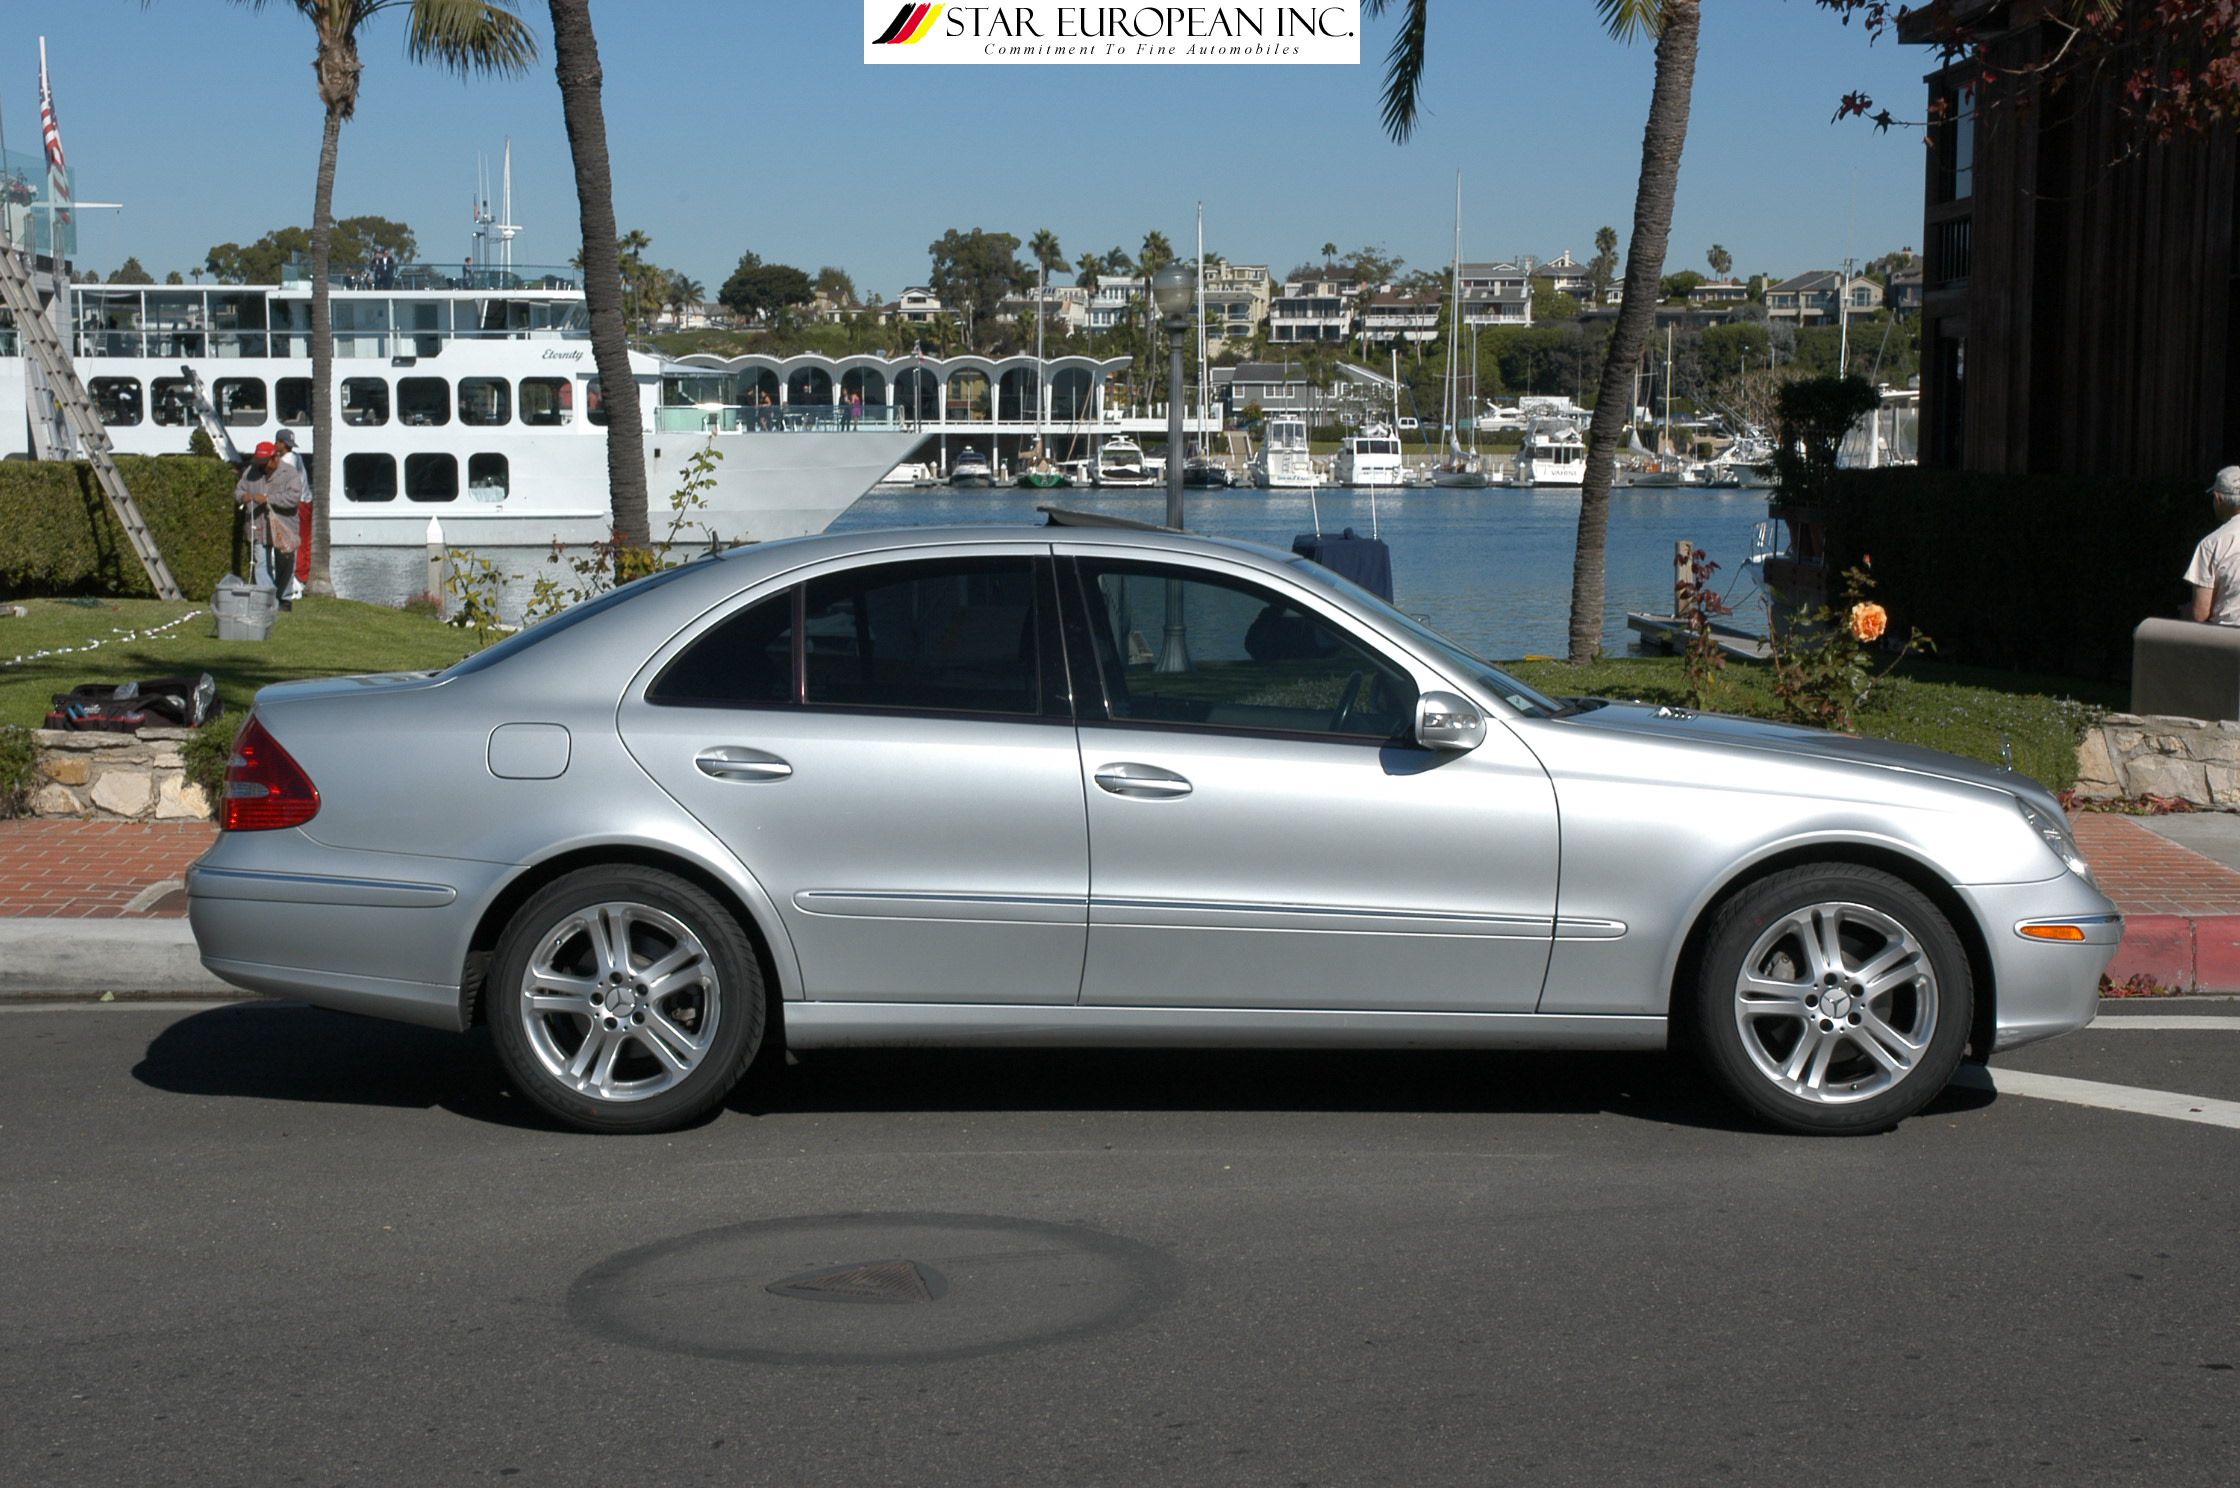 2005 Mercedes Benz E350 with Sports Equipment photo - 3